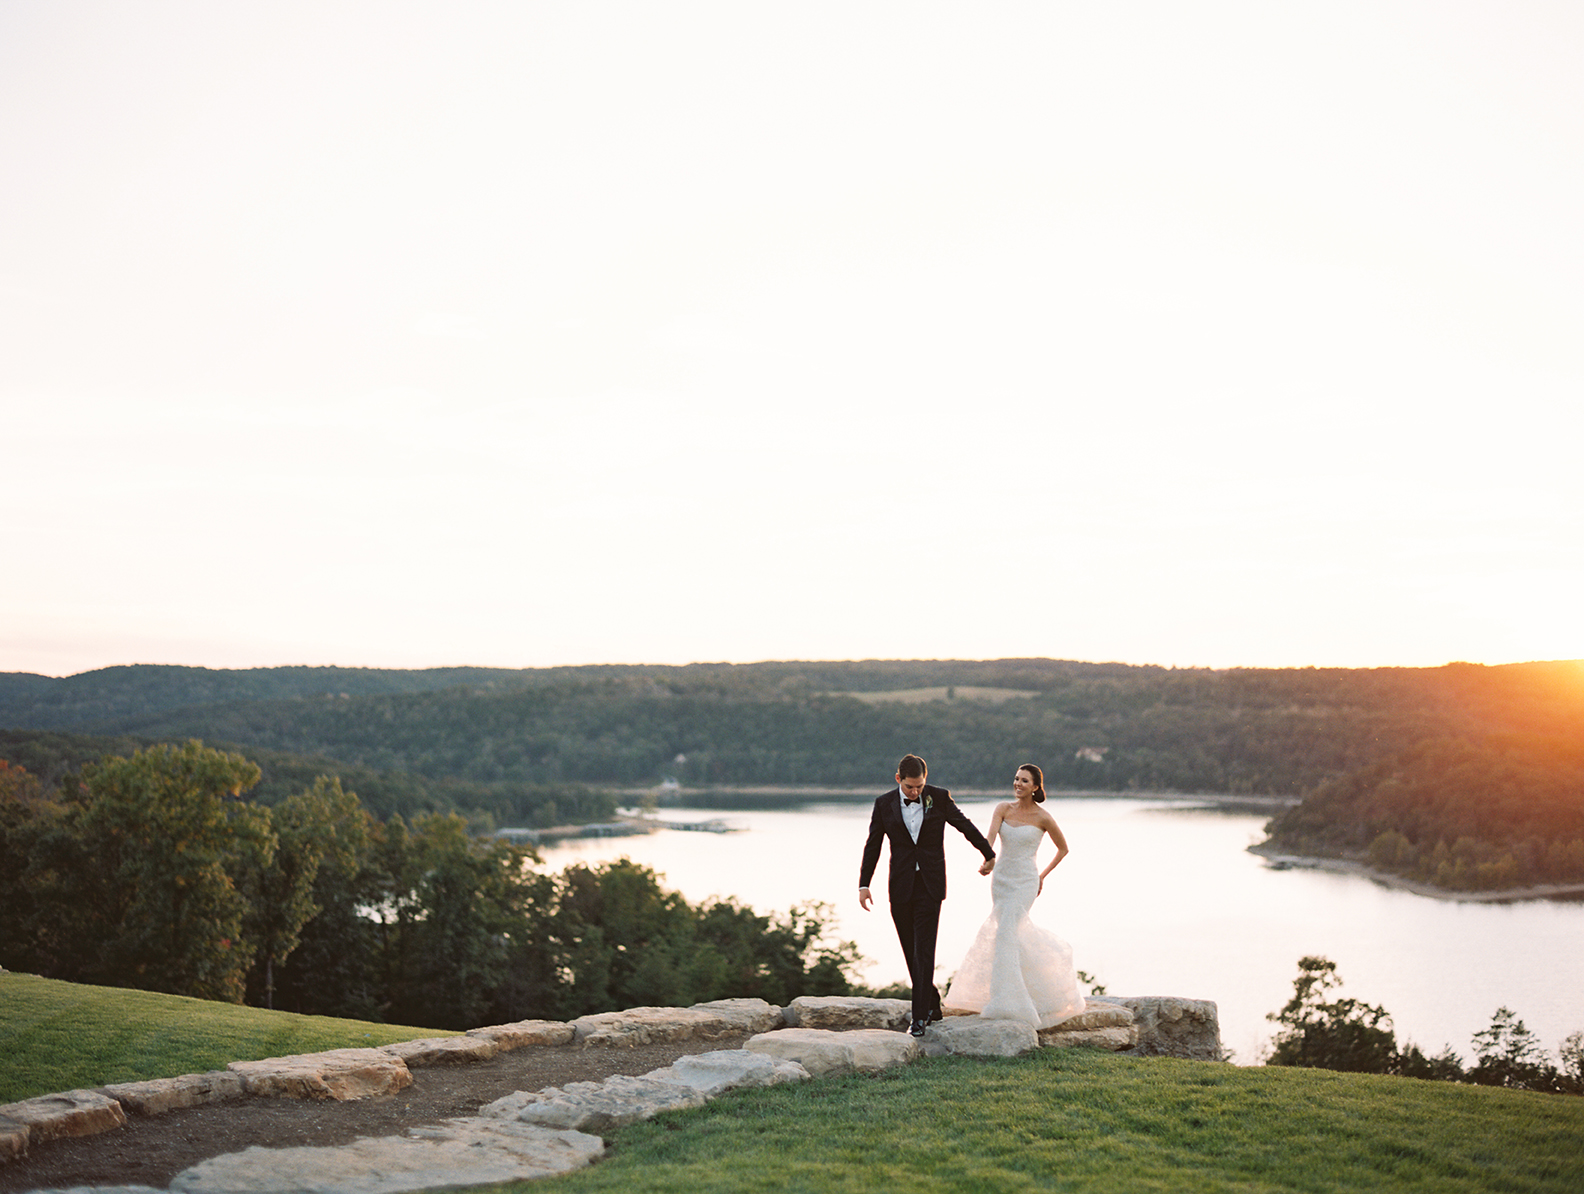 446-brumley-wells-film-photography-destination-wedding-matt-monica.jpg